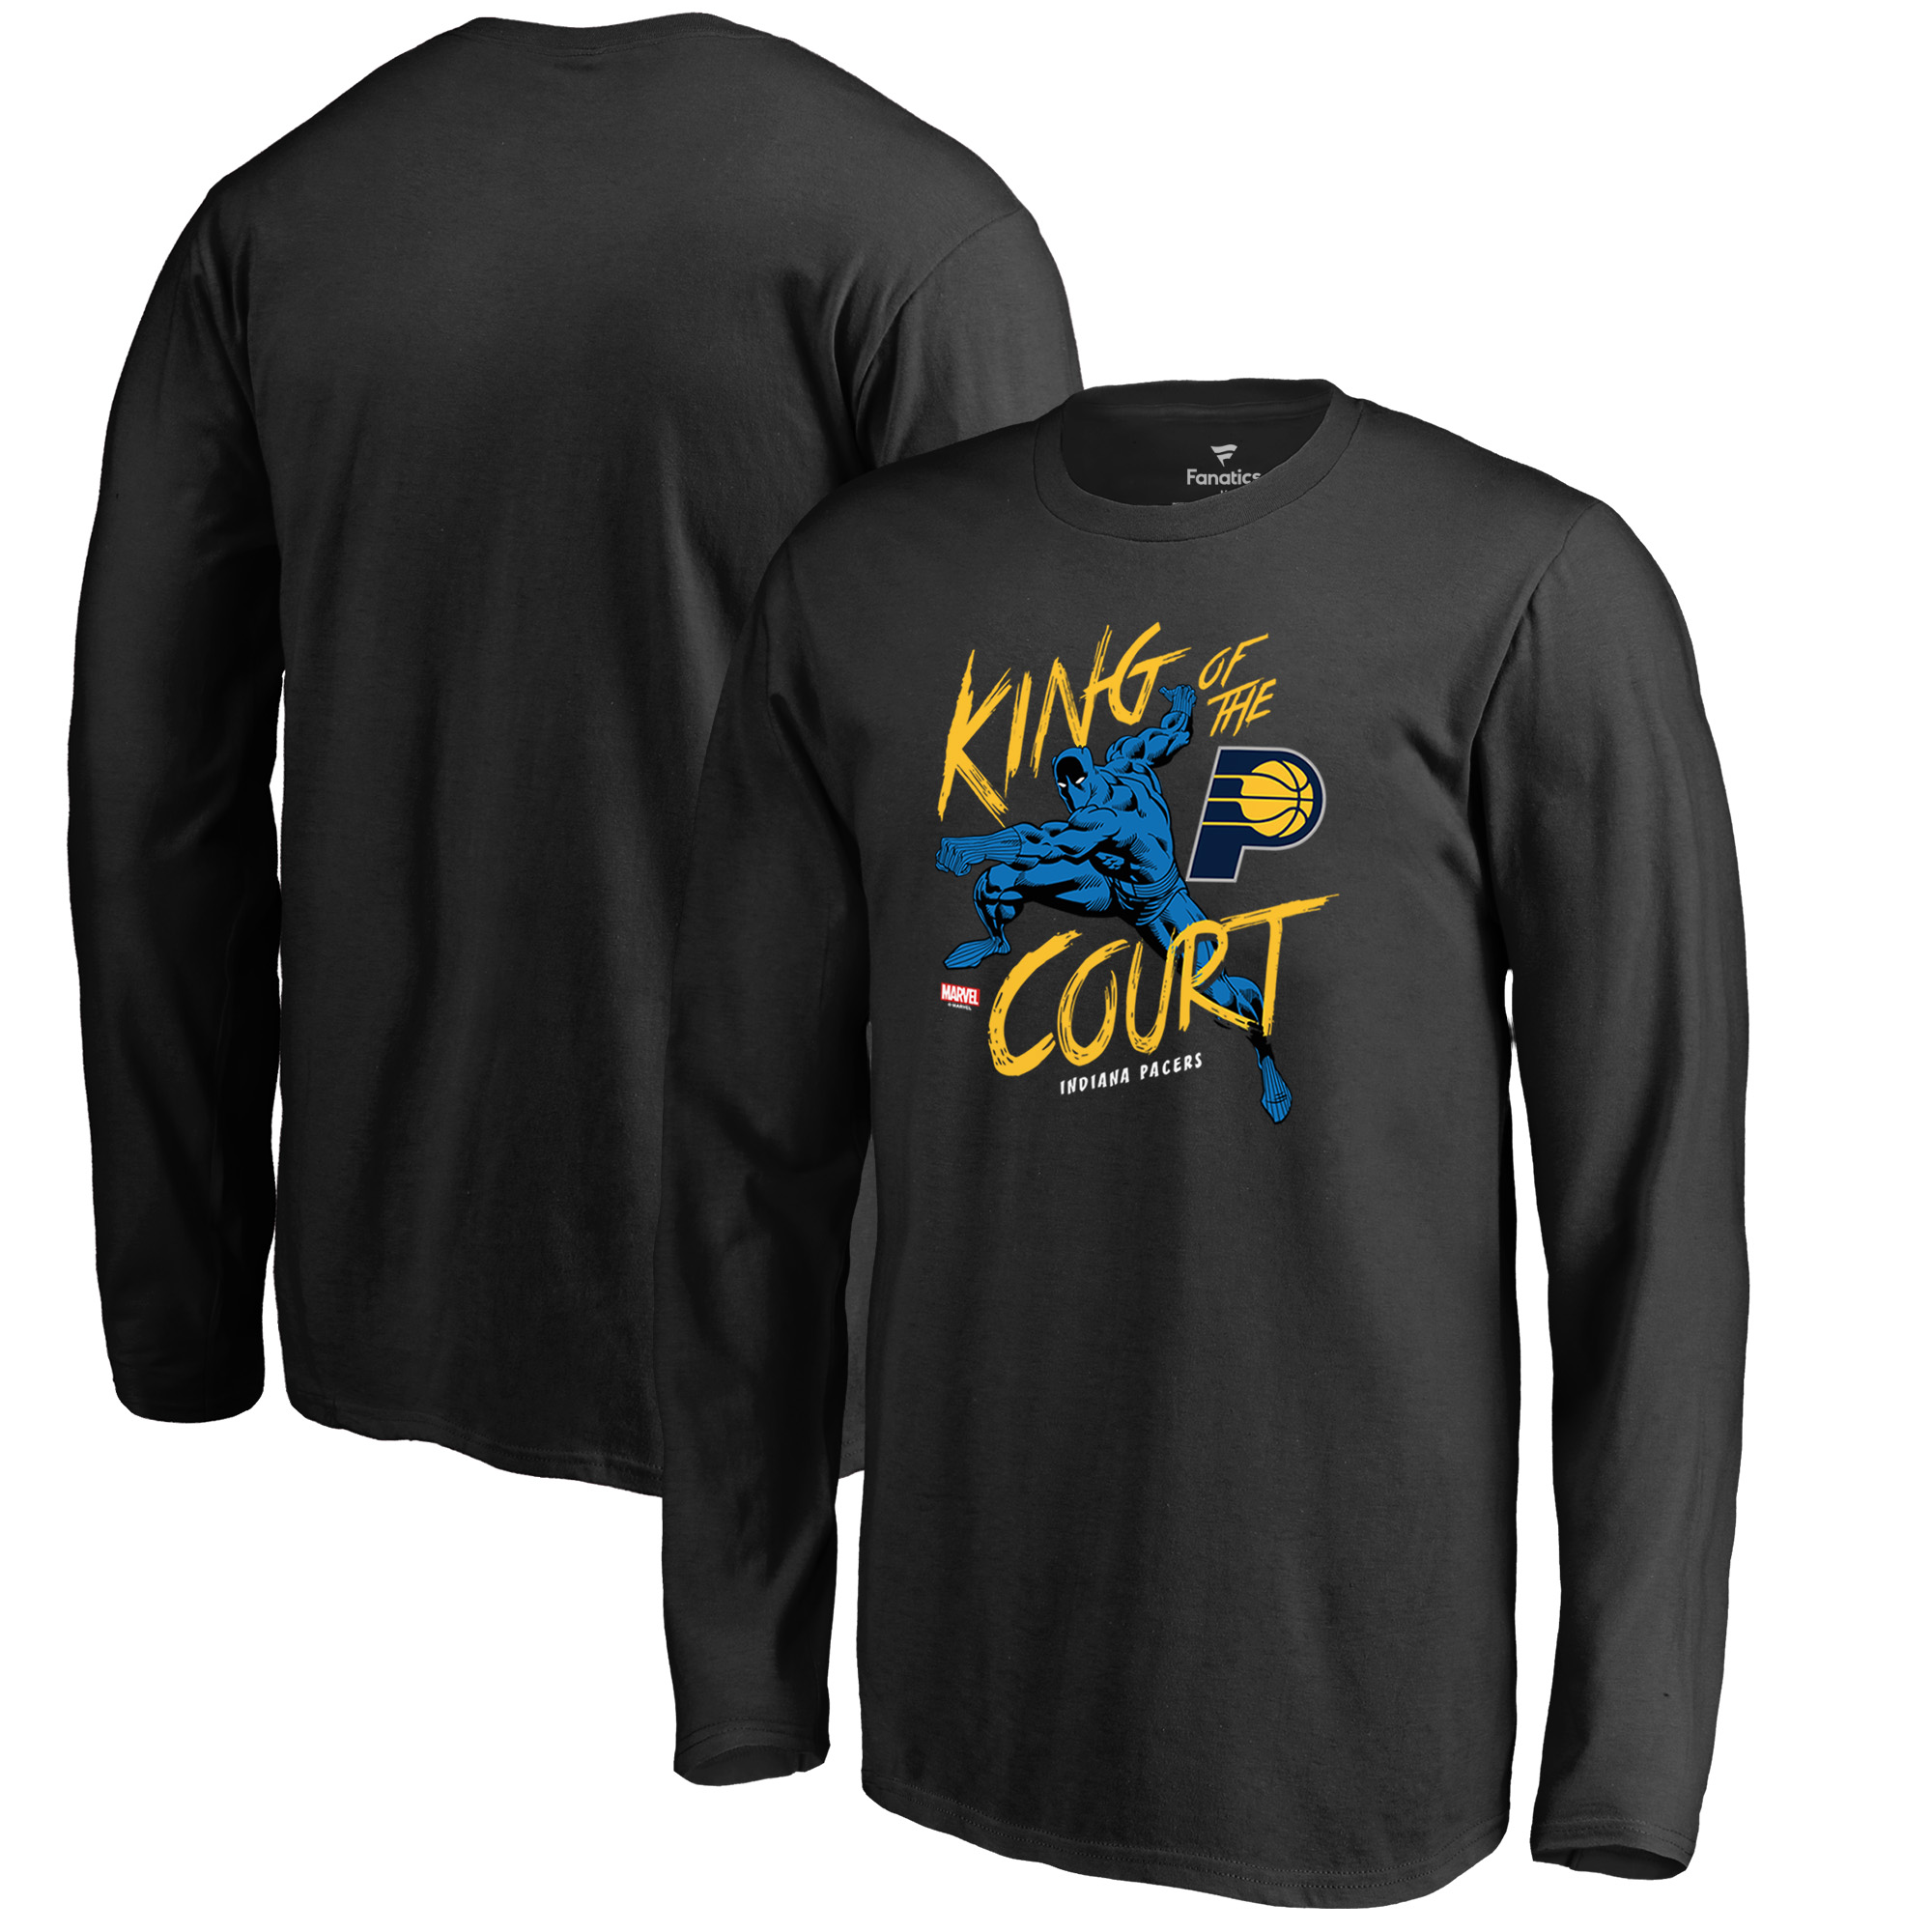 Indiana Pacers Fanatics Branded Youth Marvel Black Panther King of the Court Long Sleeve T-Shirt - Black